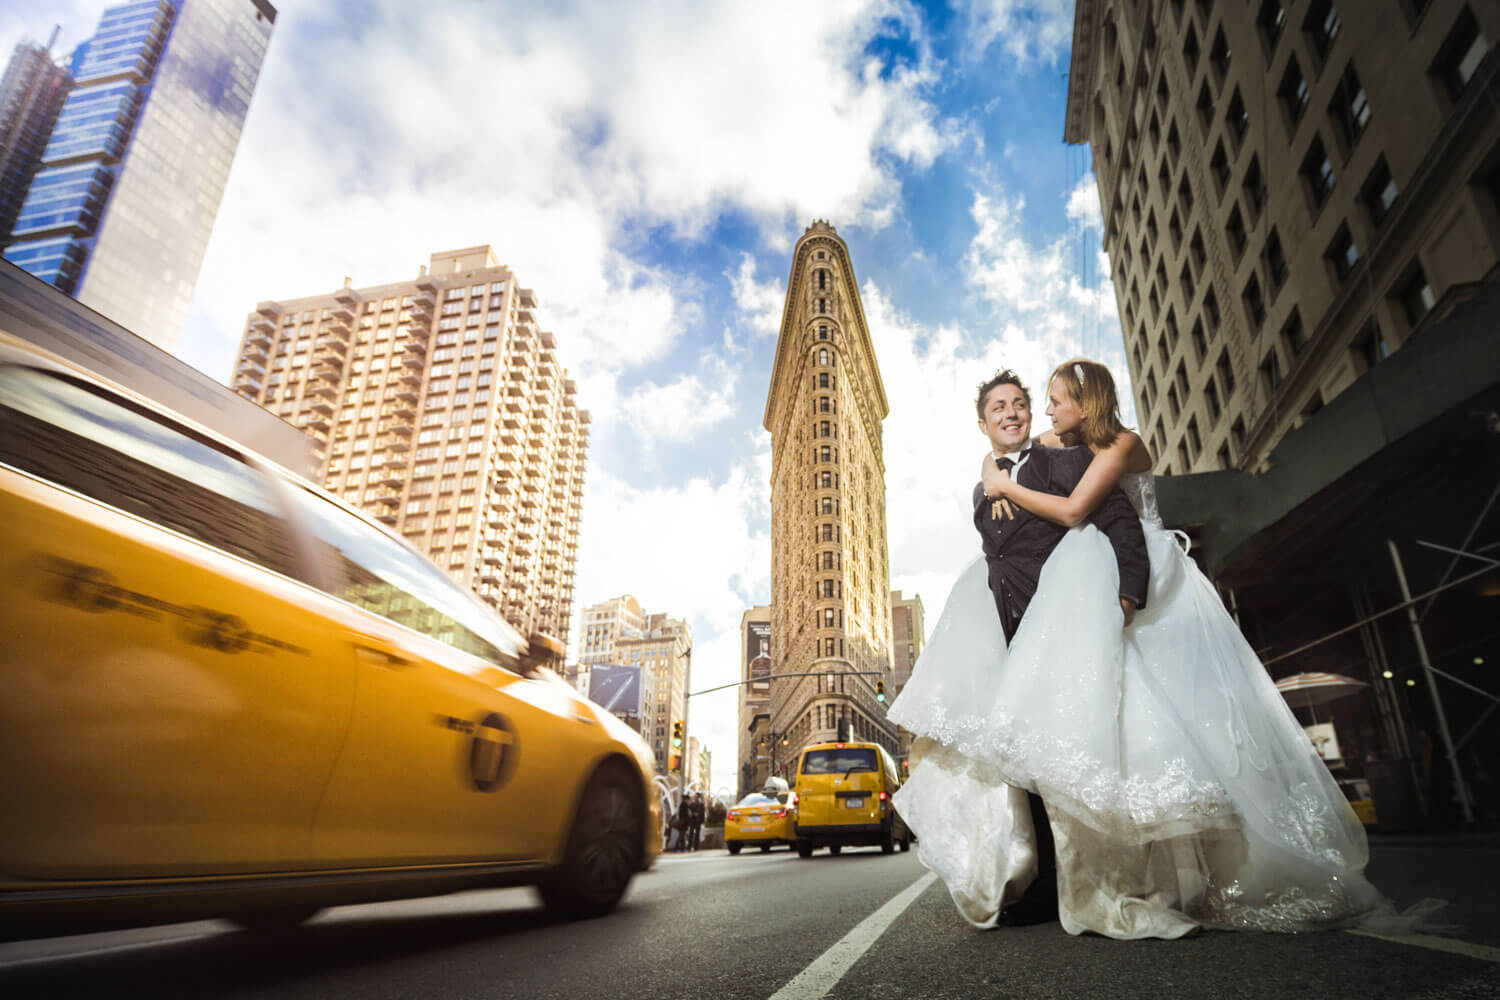 Gaia e Gabriele - Honeymoon Postwedding New York 19